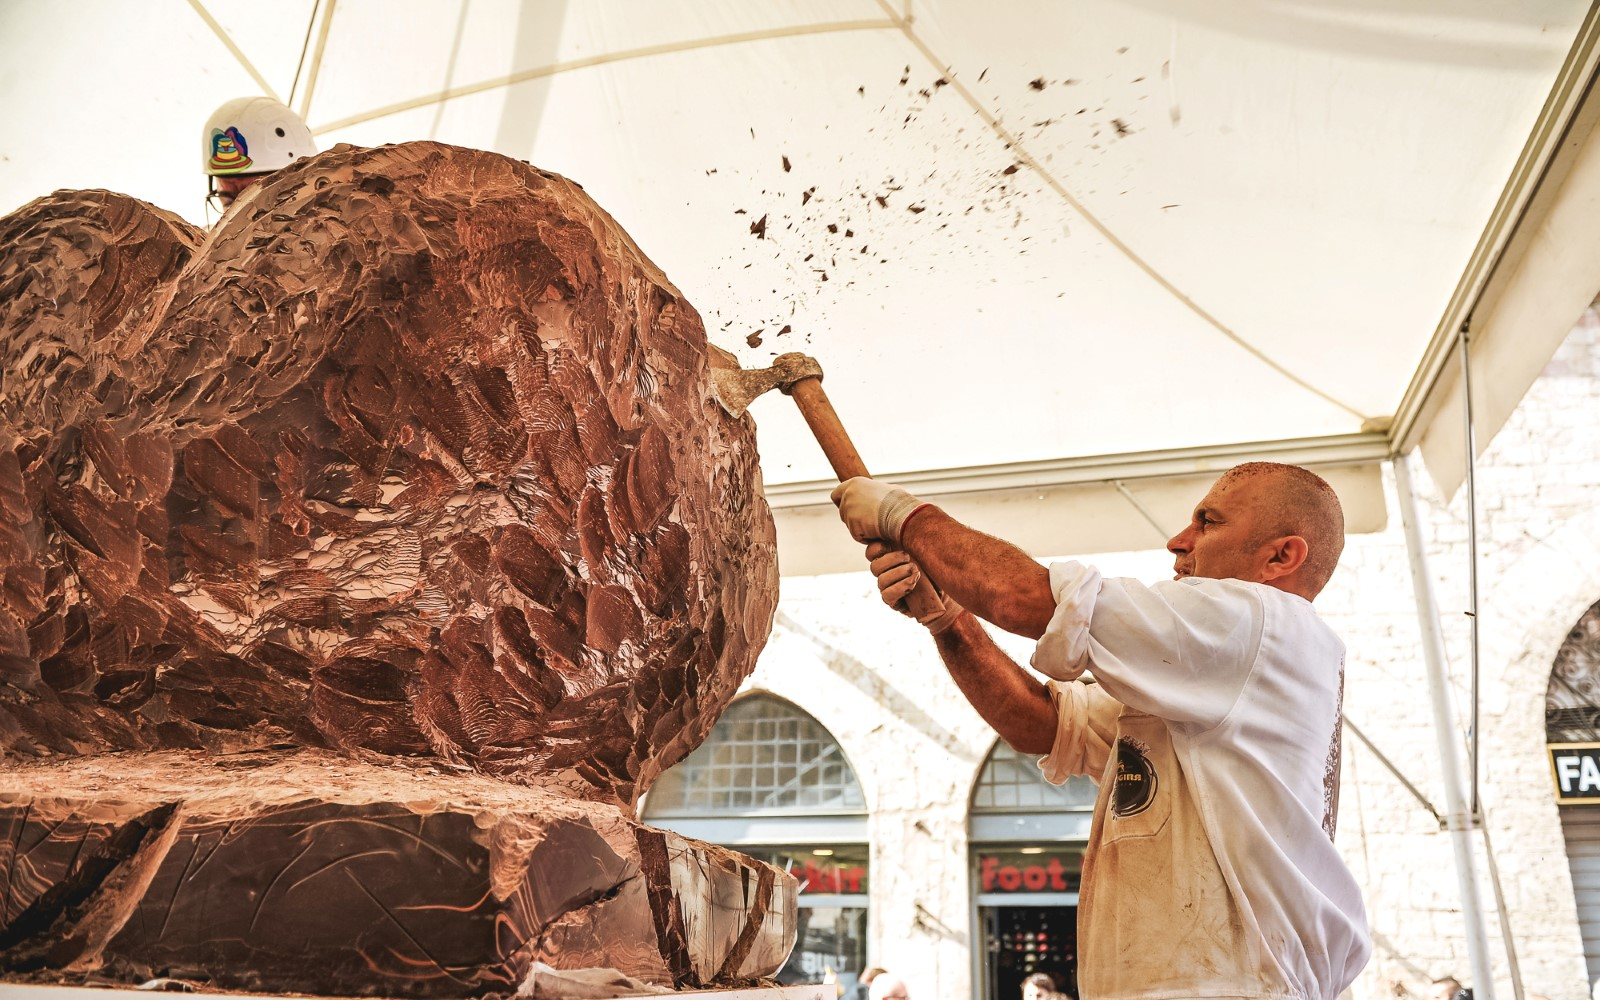 scultori-di-cioccolato-all-opera-eurochocolate-perugia